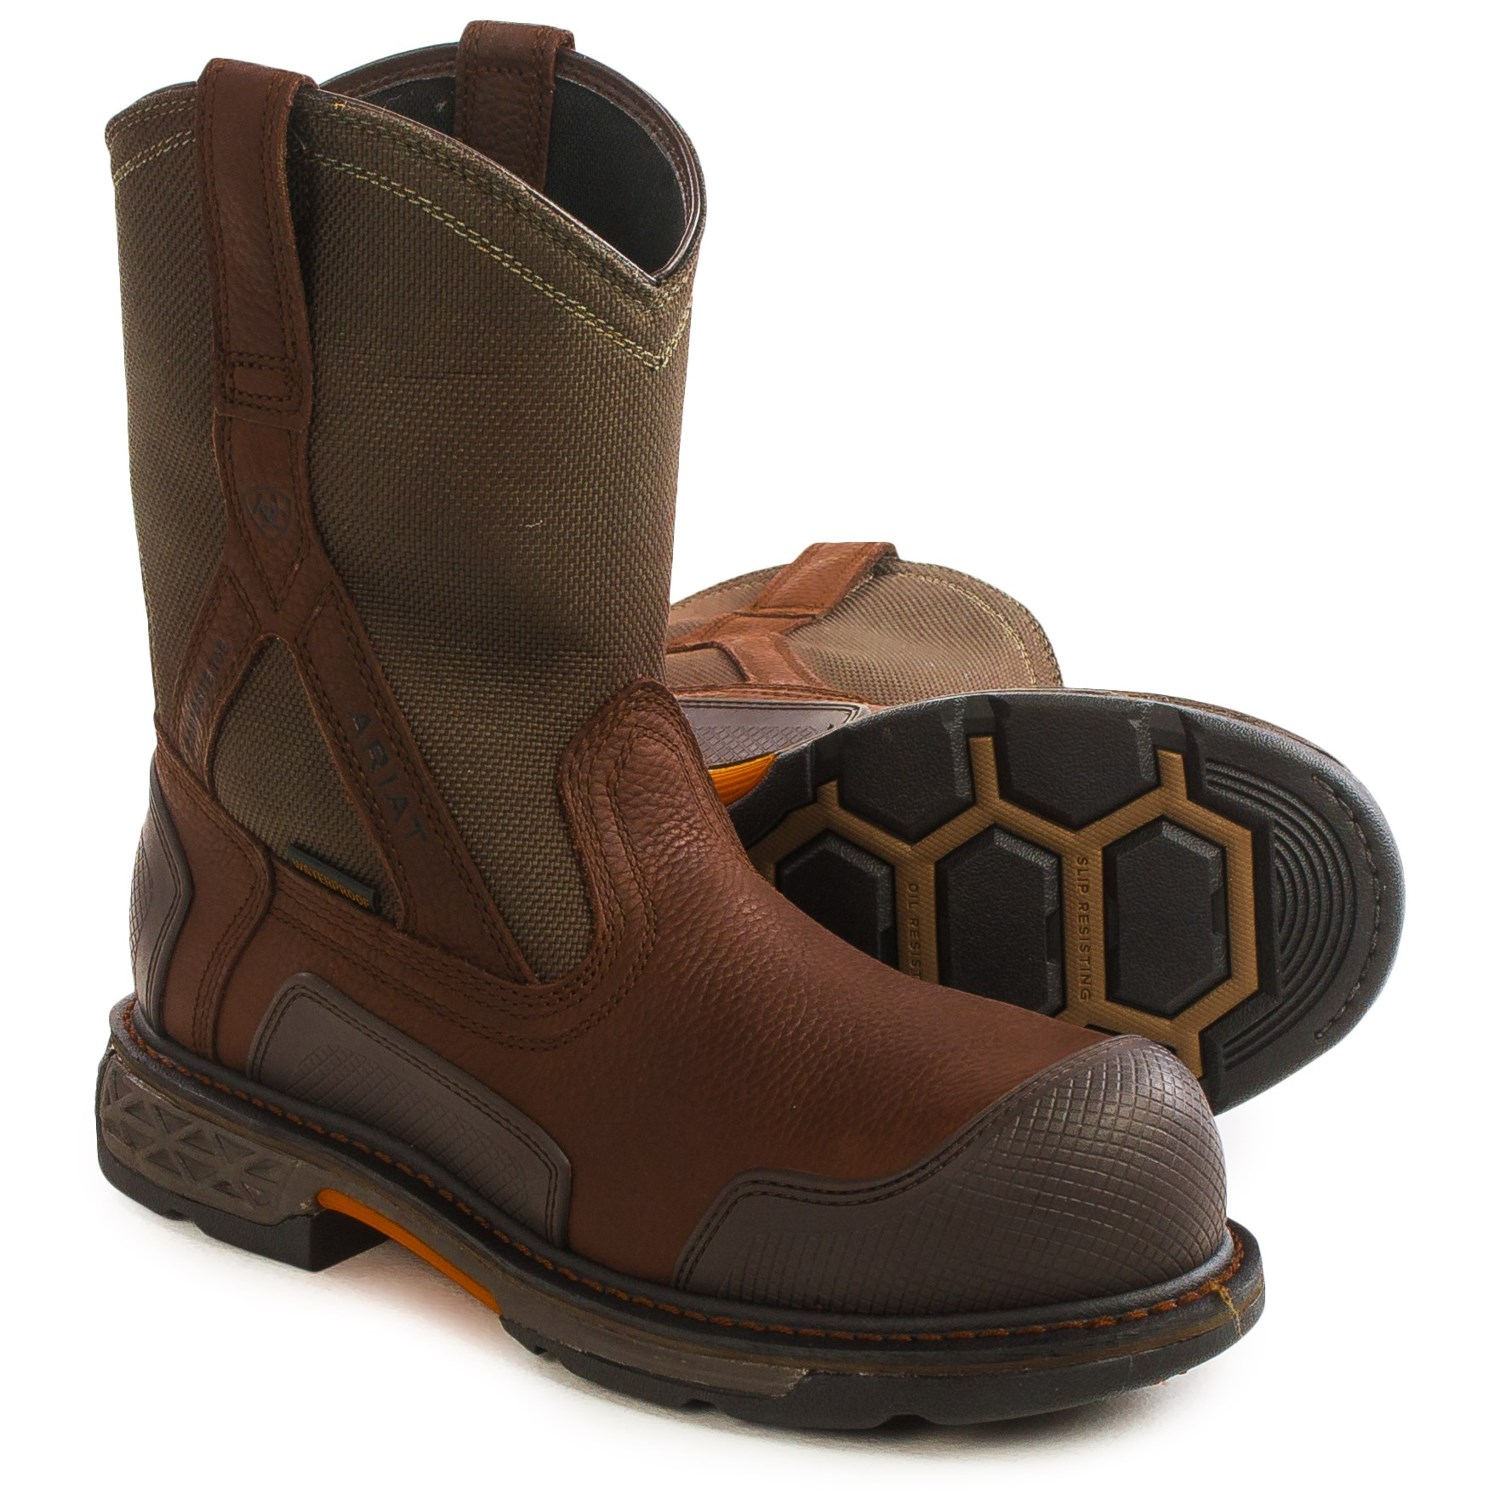 Best Place To Buy Work Boots 2CBqyAd7